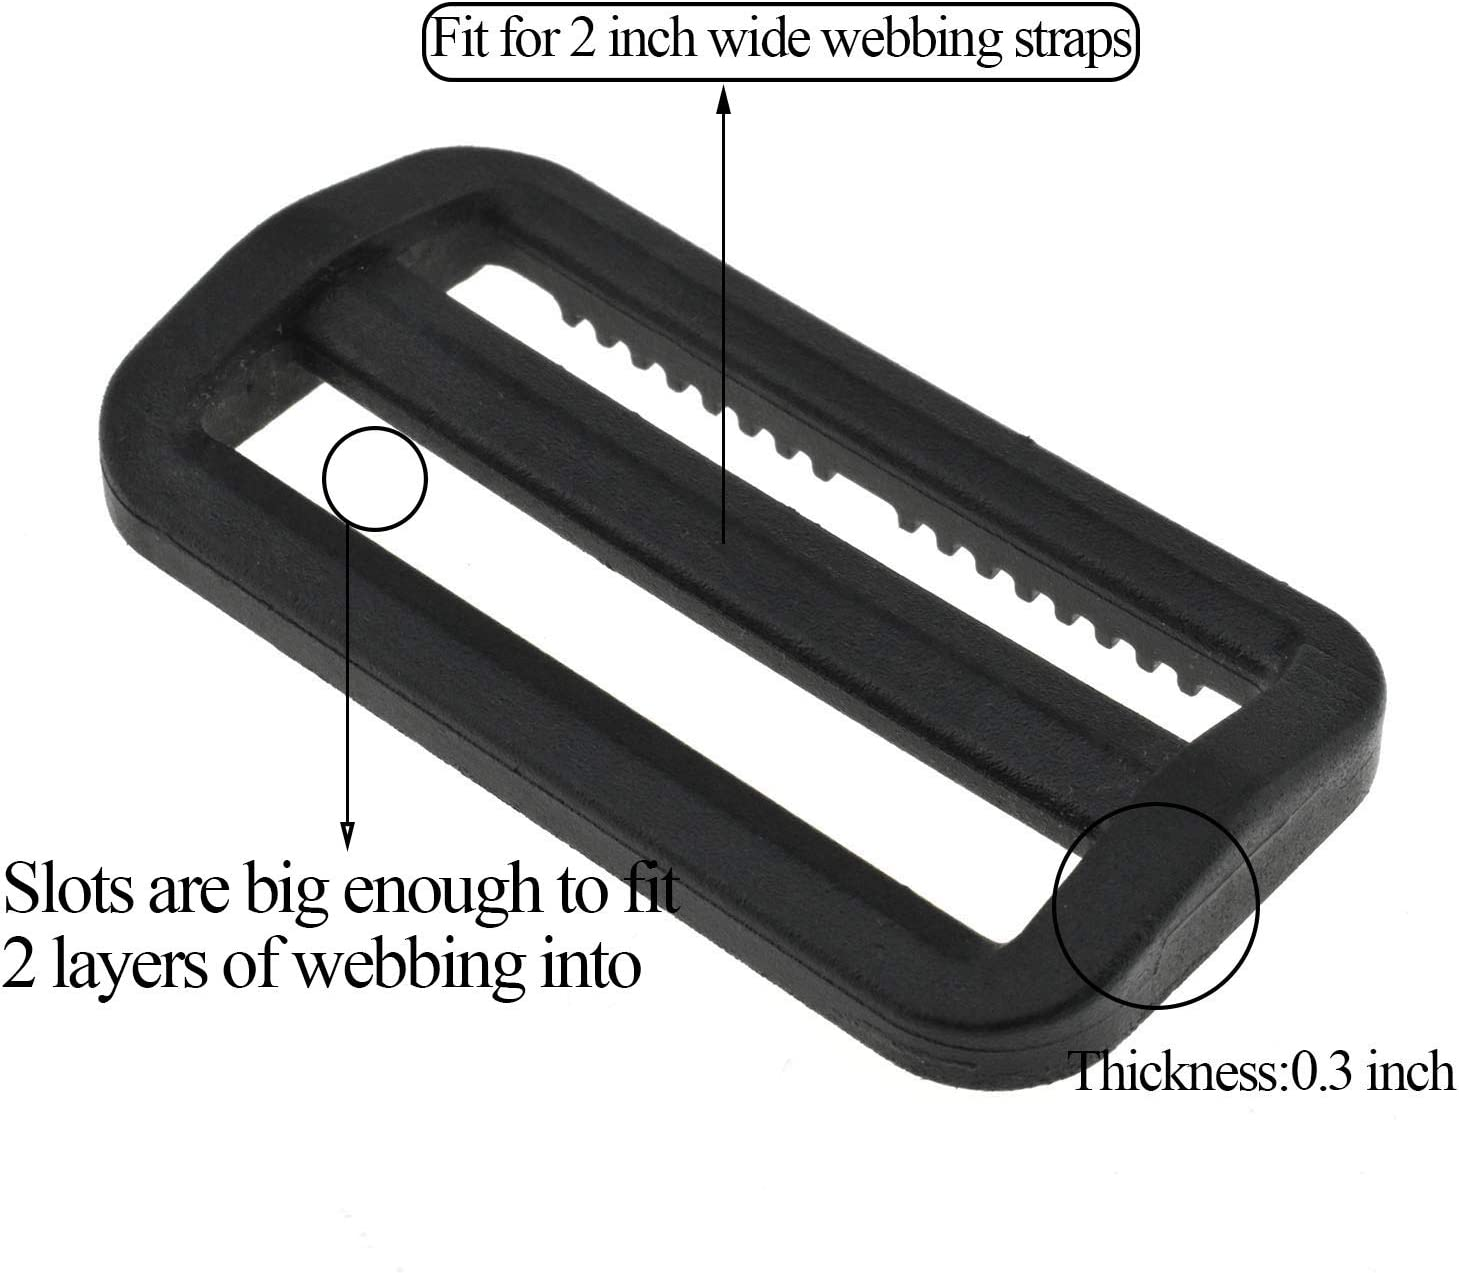 Hao Pro 2 Inch Tri Glides Slides Clips Buckles Gripping Knurled Edge No Slipping Solid 8 Pack for Collars Aprons Sling Bag Adjustable Straps Belt Big Slots No Sharp Edges No Sewing